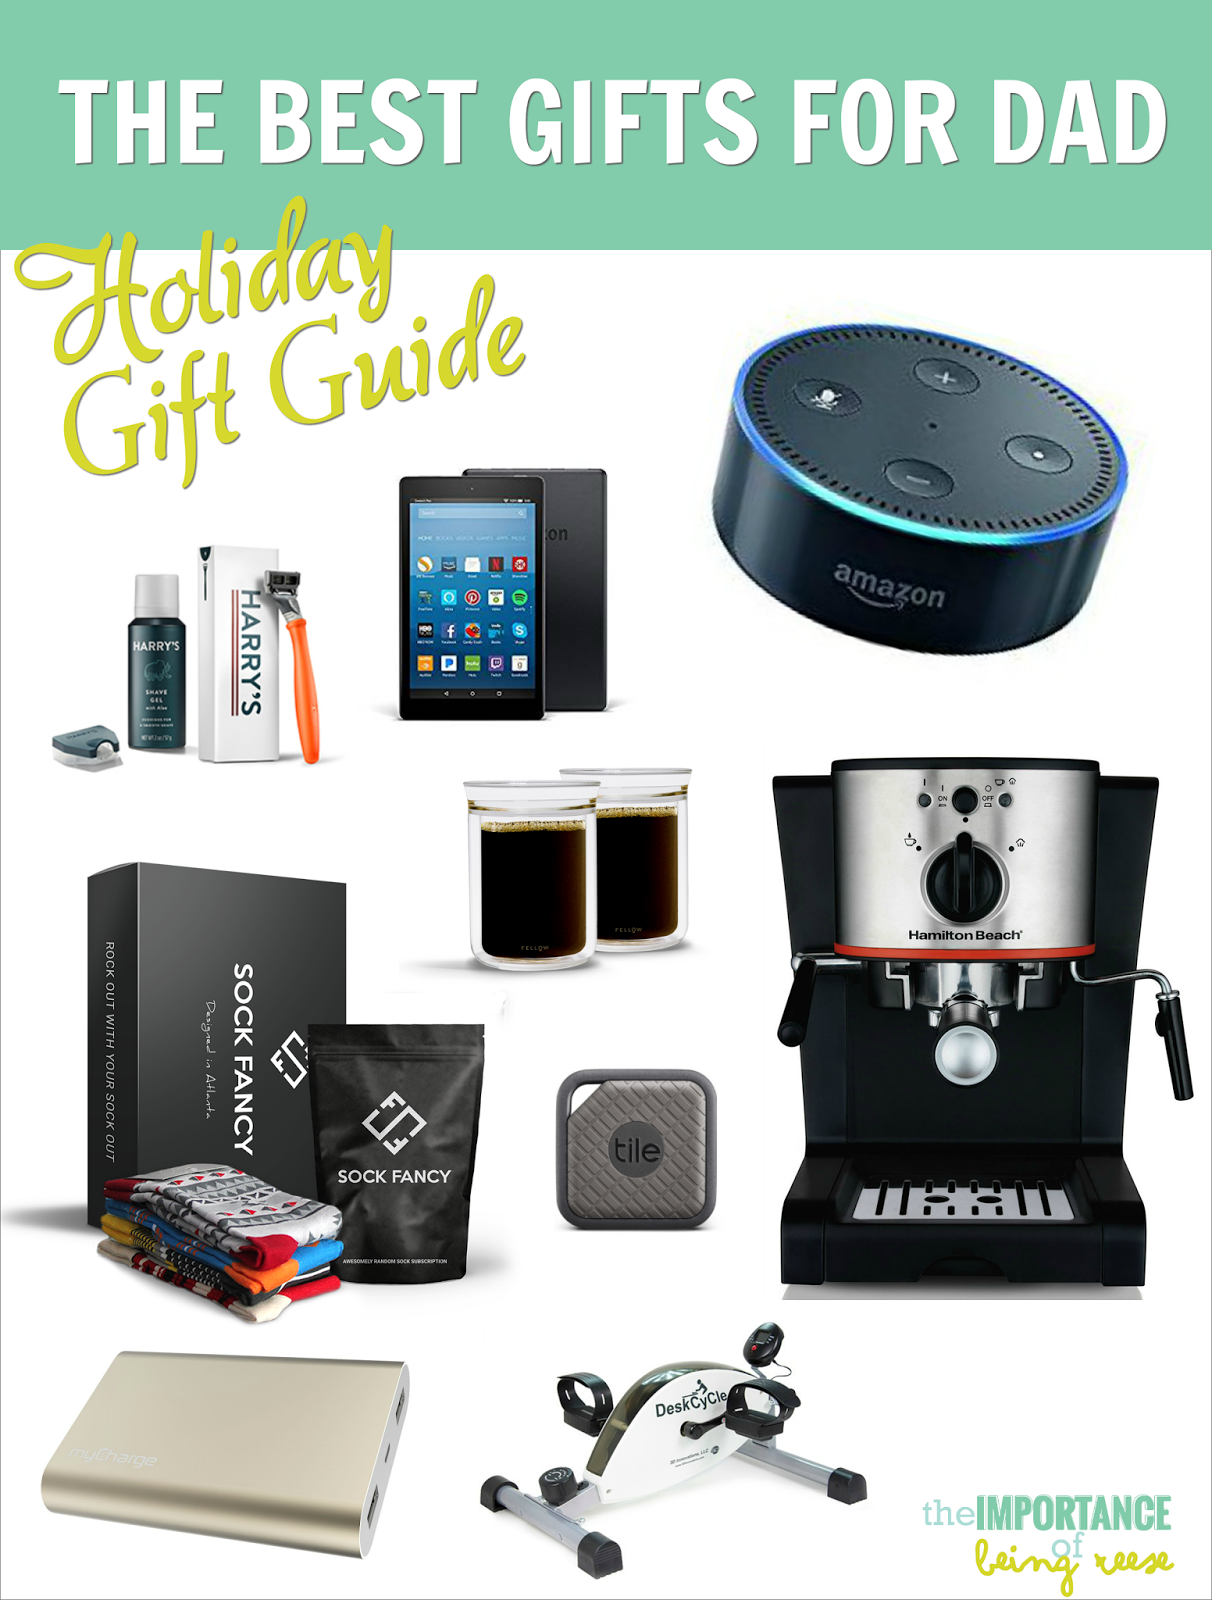 Here are some of the hottest Holiday gift ideas for the Dads this season!